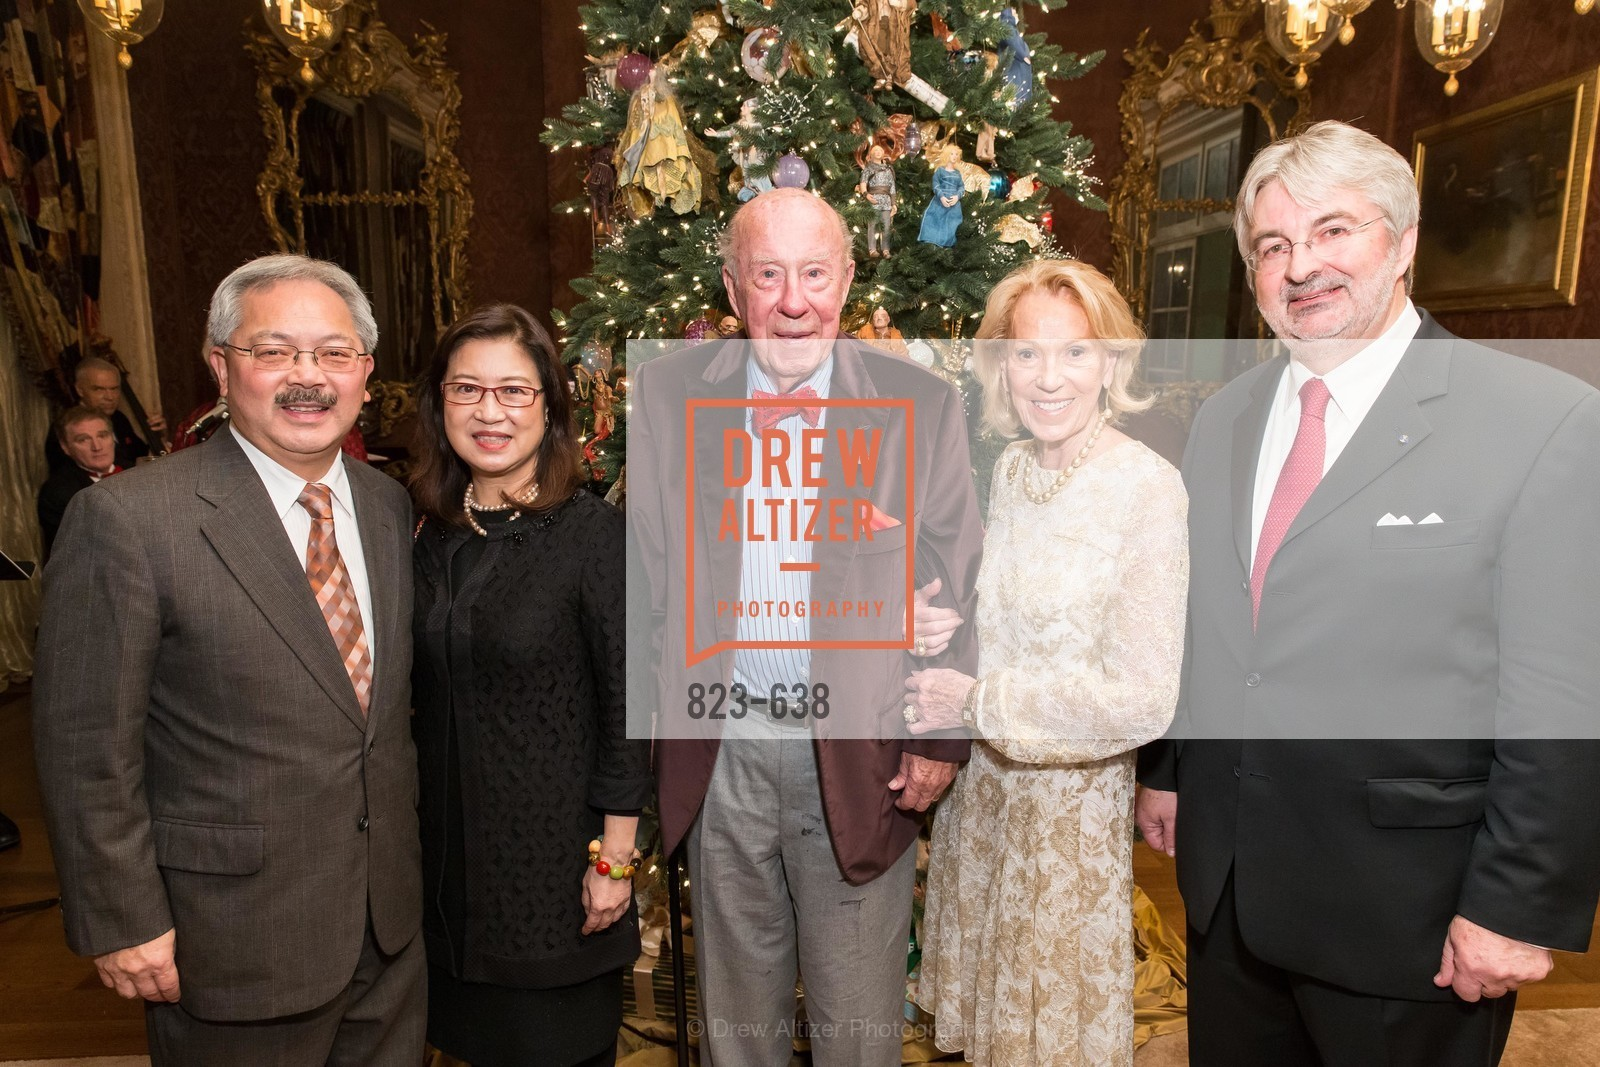 Ed Lee, Anita Lee, George Shultz, Charlotte Shultz, George Schmit, San Francisco Mayor's Office of Protocol Christmas Party, Private Residence, December 9th, 2015,Drew Altizer, Drew Altizer Photography, full-service agency, private events, San Francisco photographer, photographer california